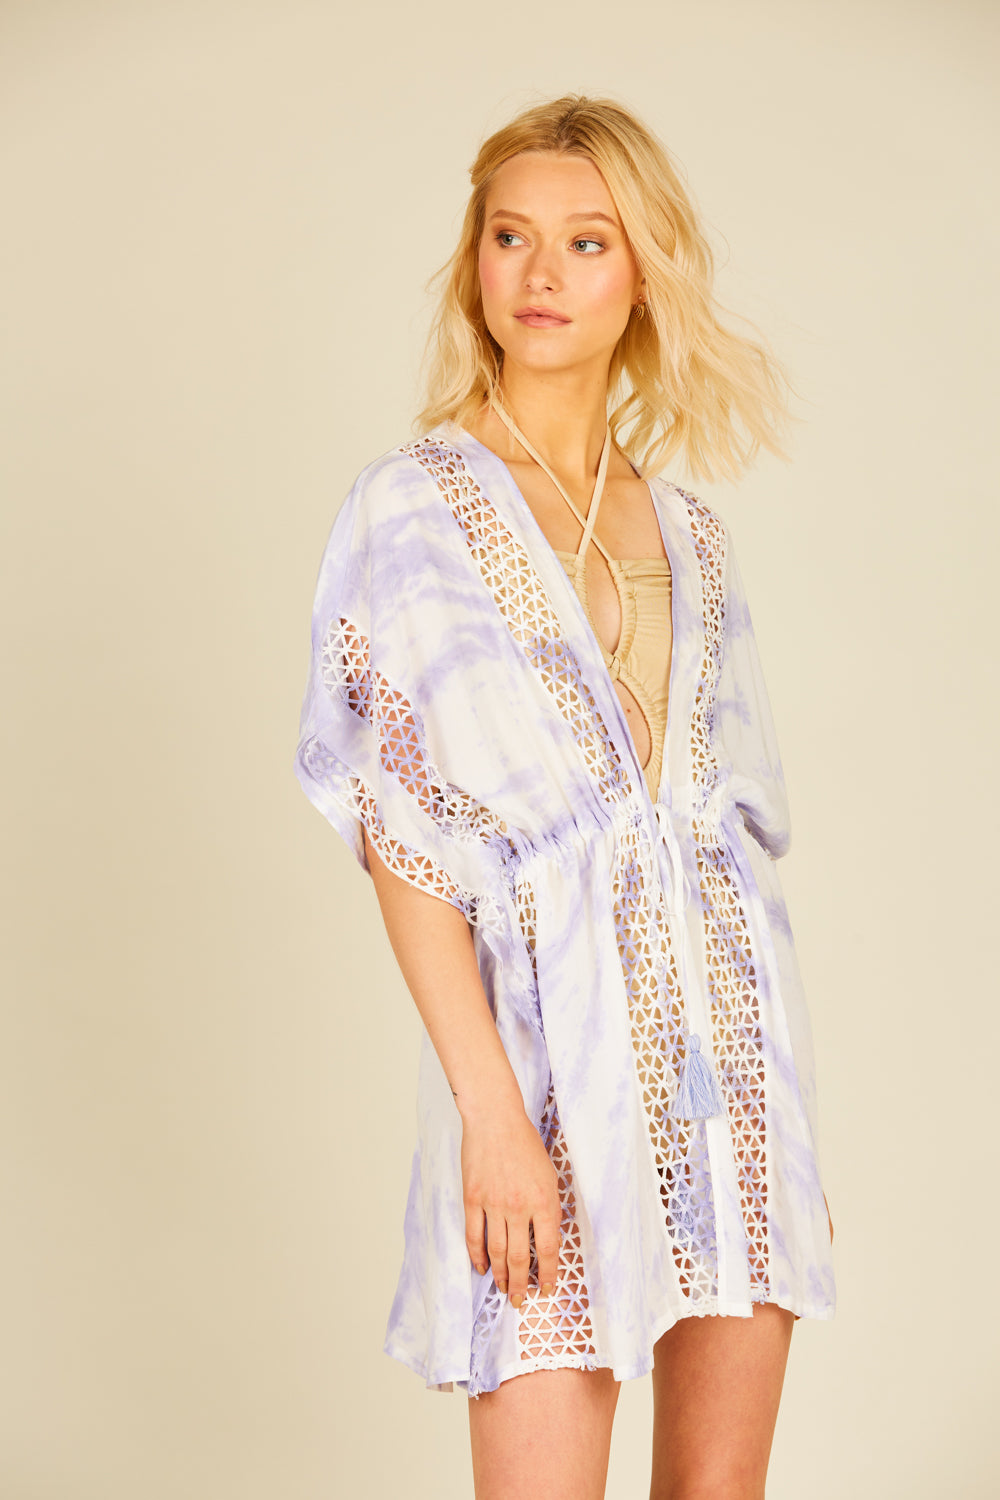 Lavender Starburst Tie Dye Embroidered Coverup